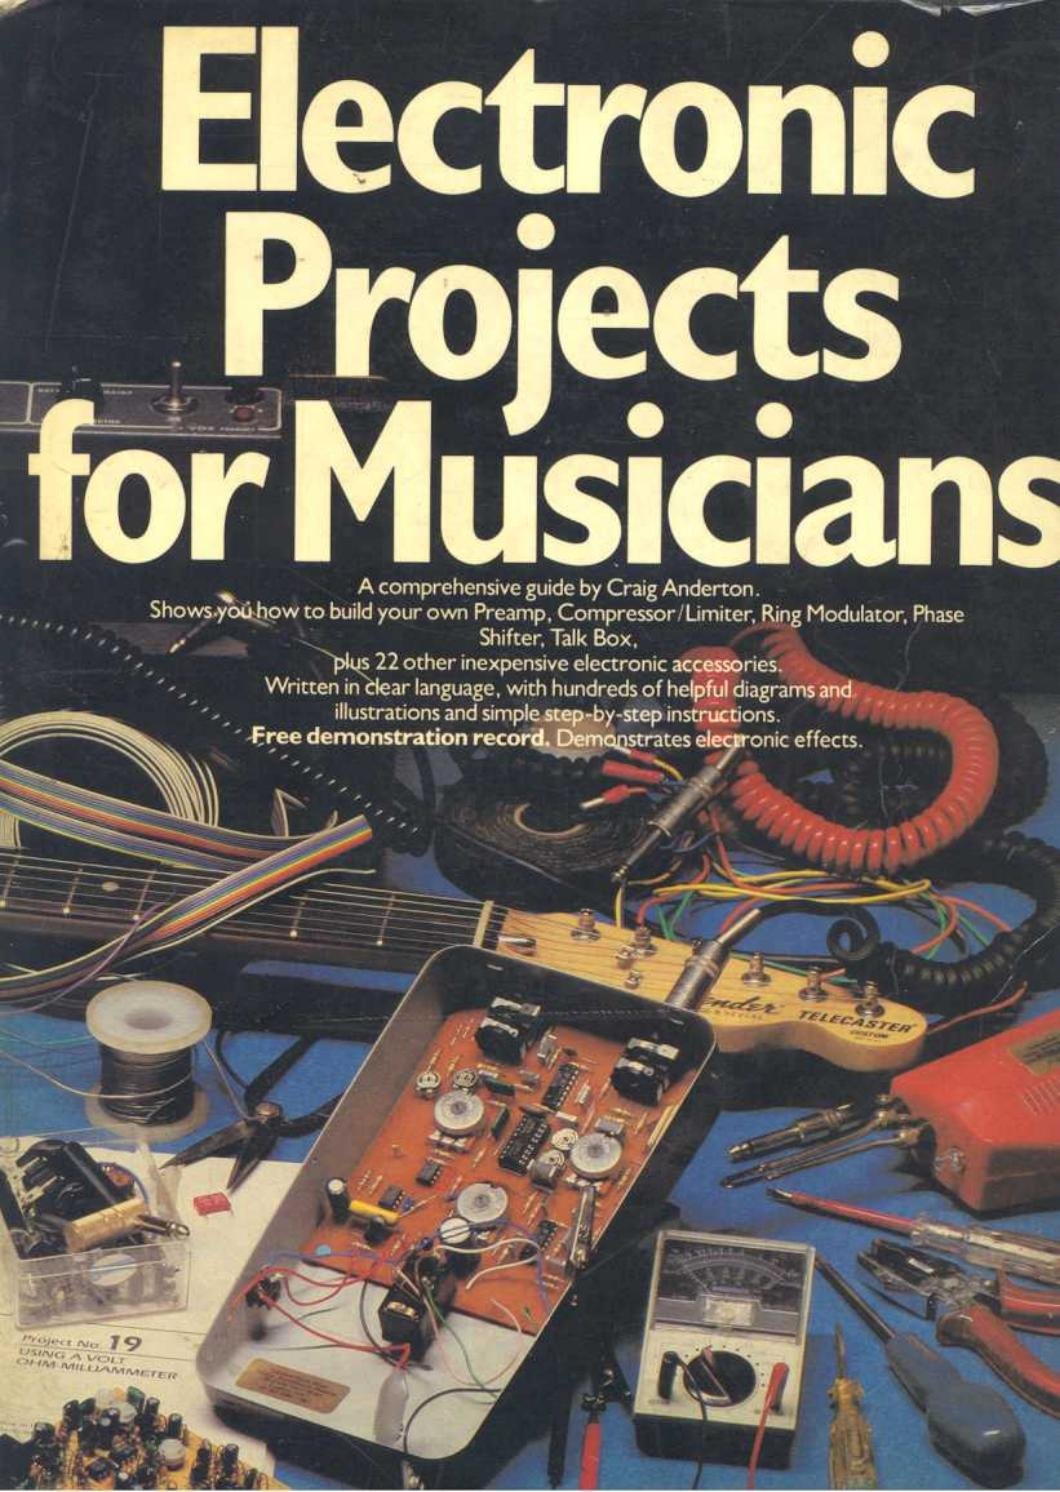 Electronic Projects For Musicians Guitar Circuits And Schematics Fuzzi Amps Other Effects